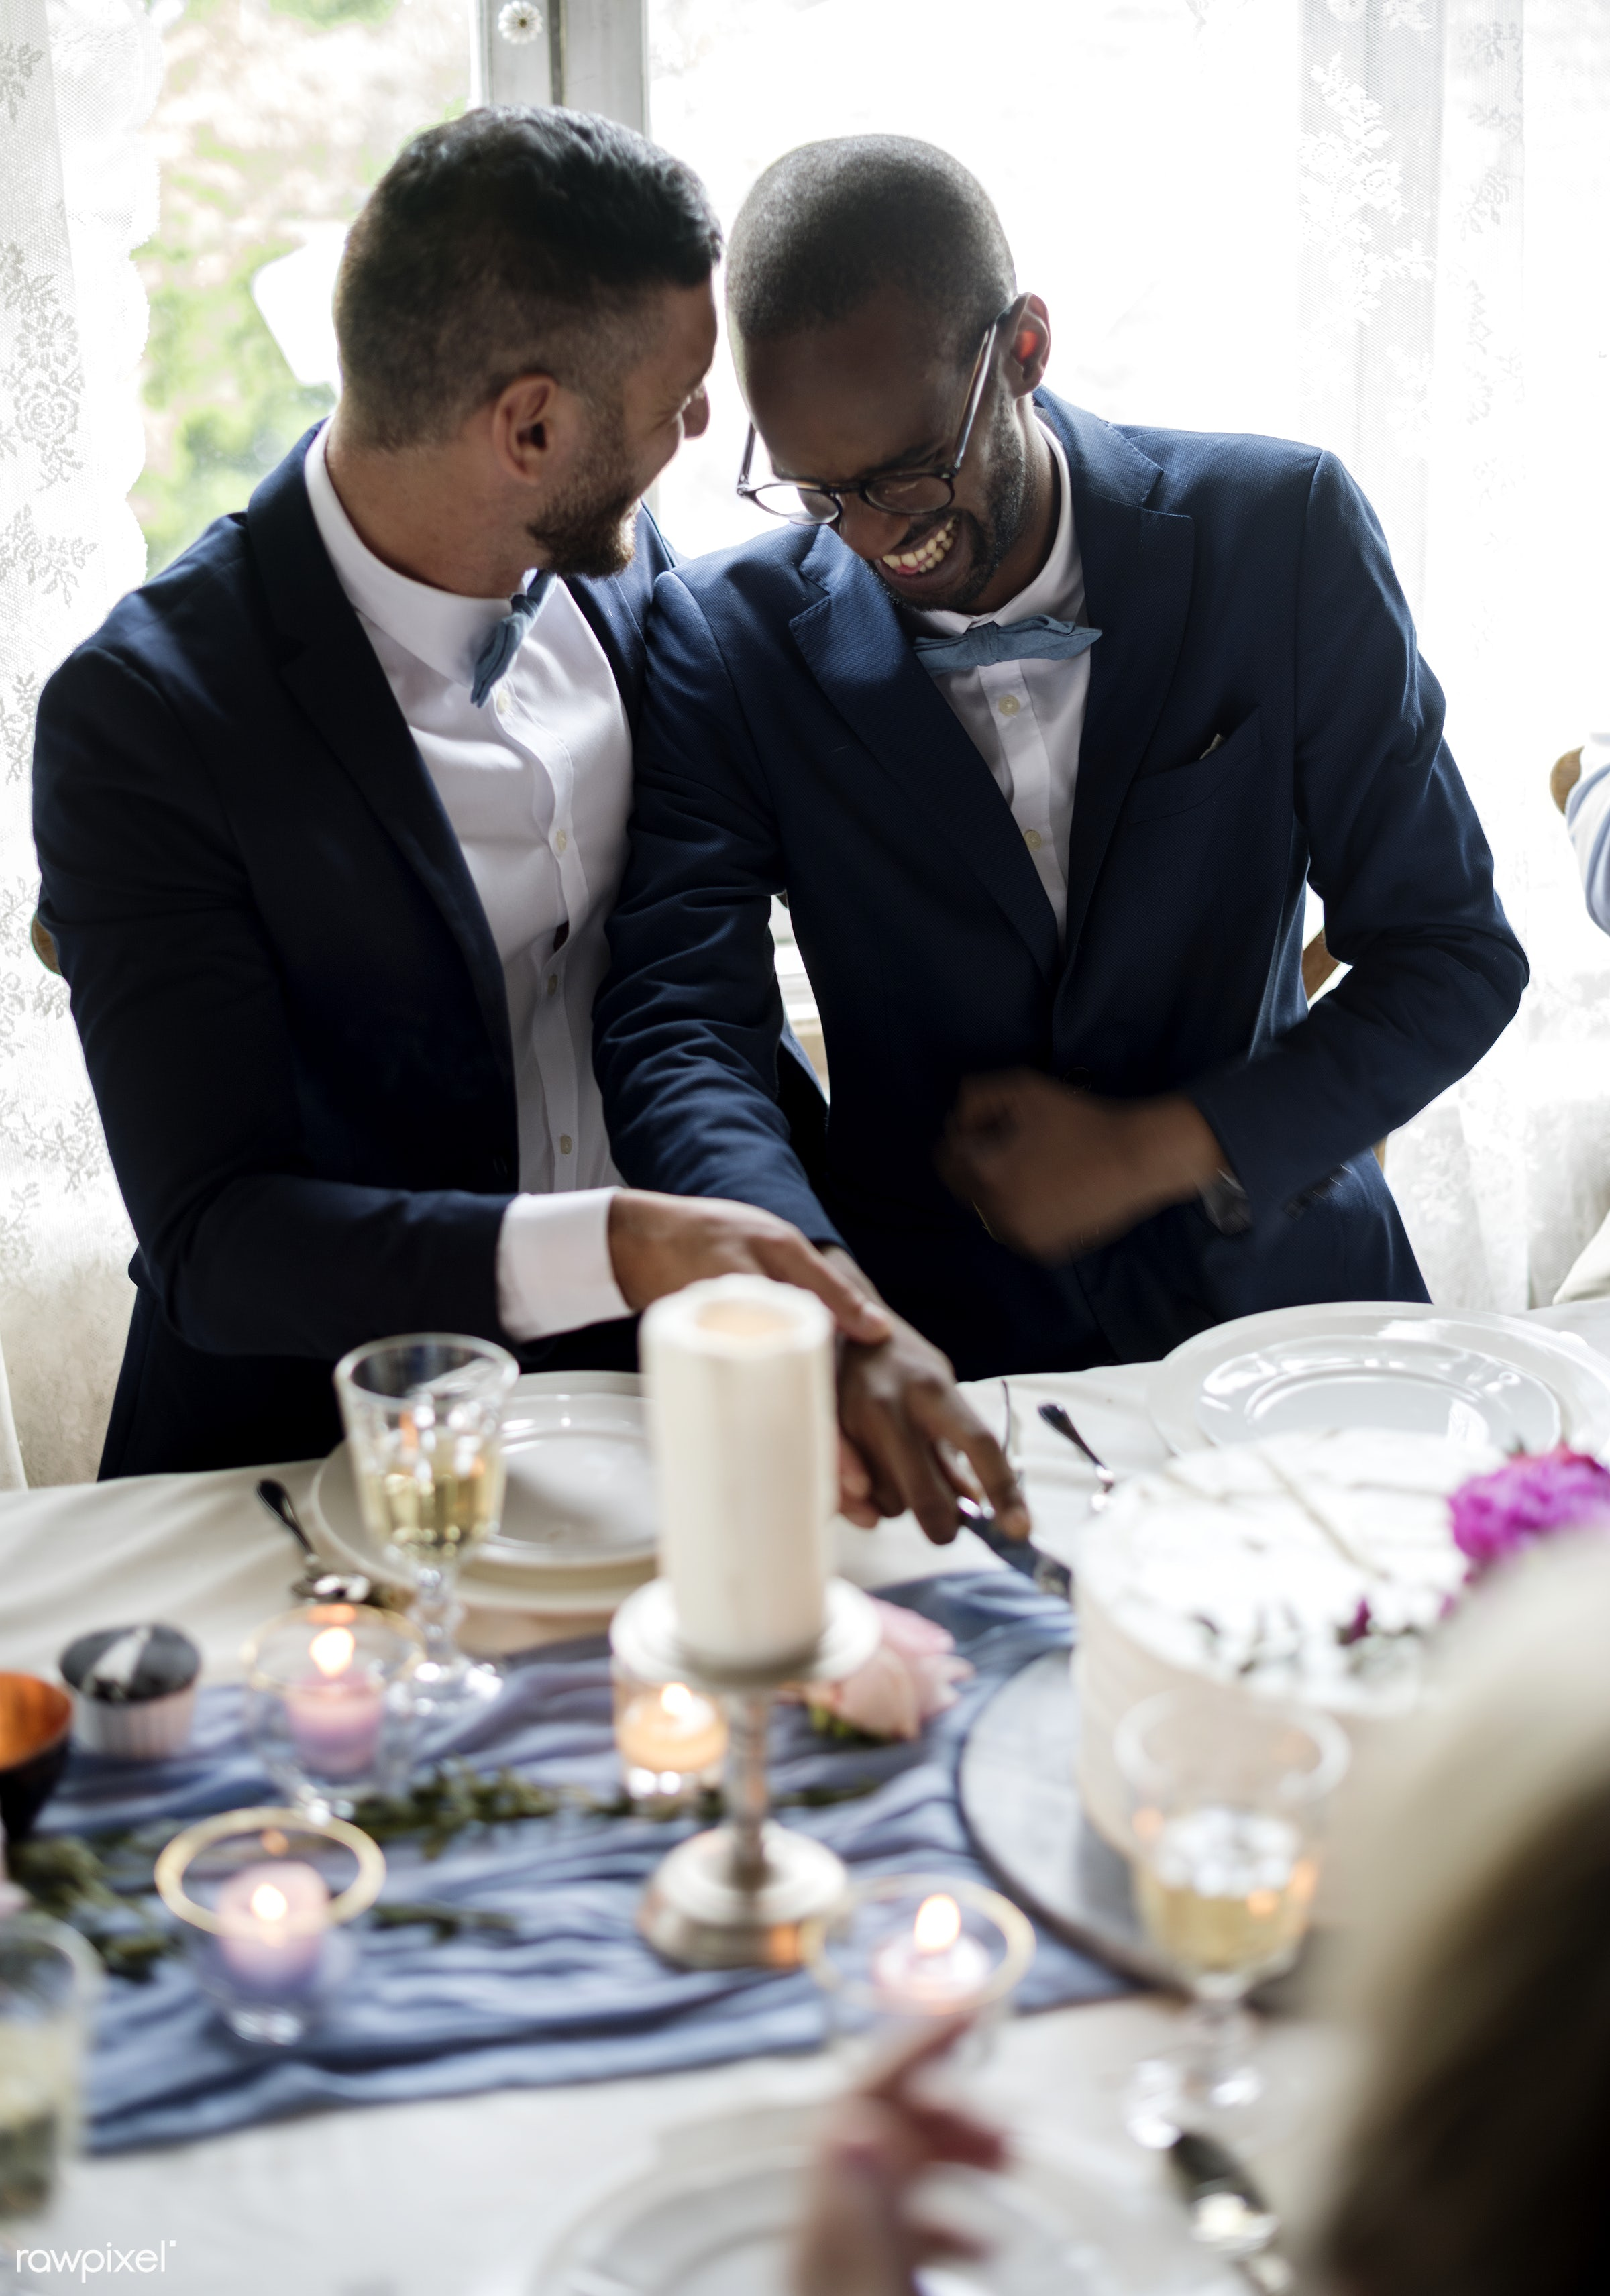 person, holding, occasion, together, love, married, hands, suits, banquet, couple, men, cheerful, smiling, cake, diversity,...